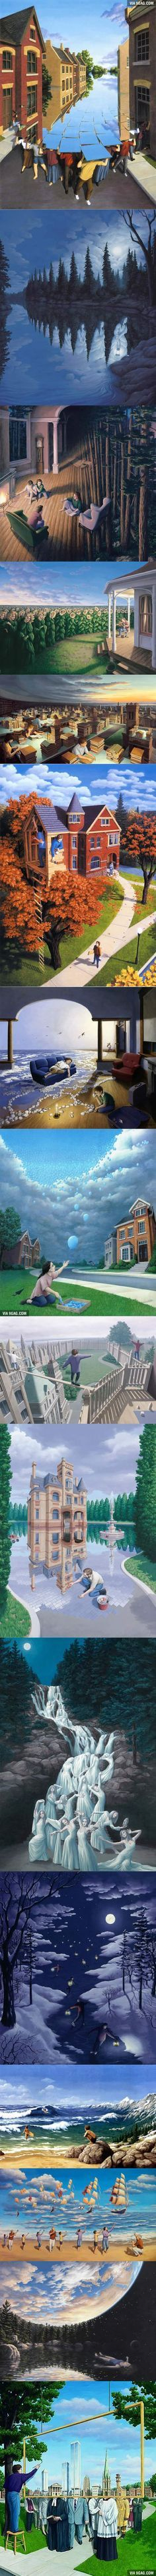 Paintings of Rob Gonsalves that never cease to amaze.